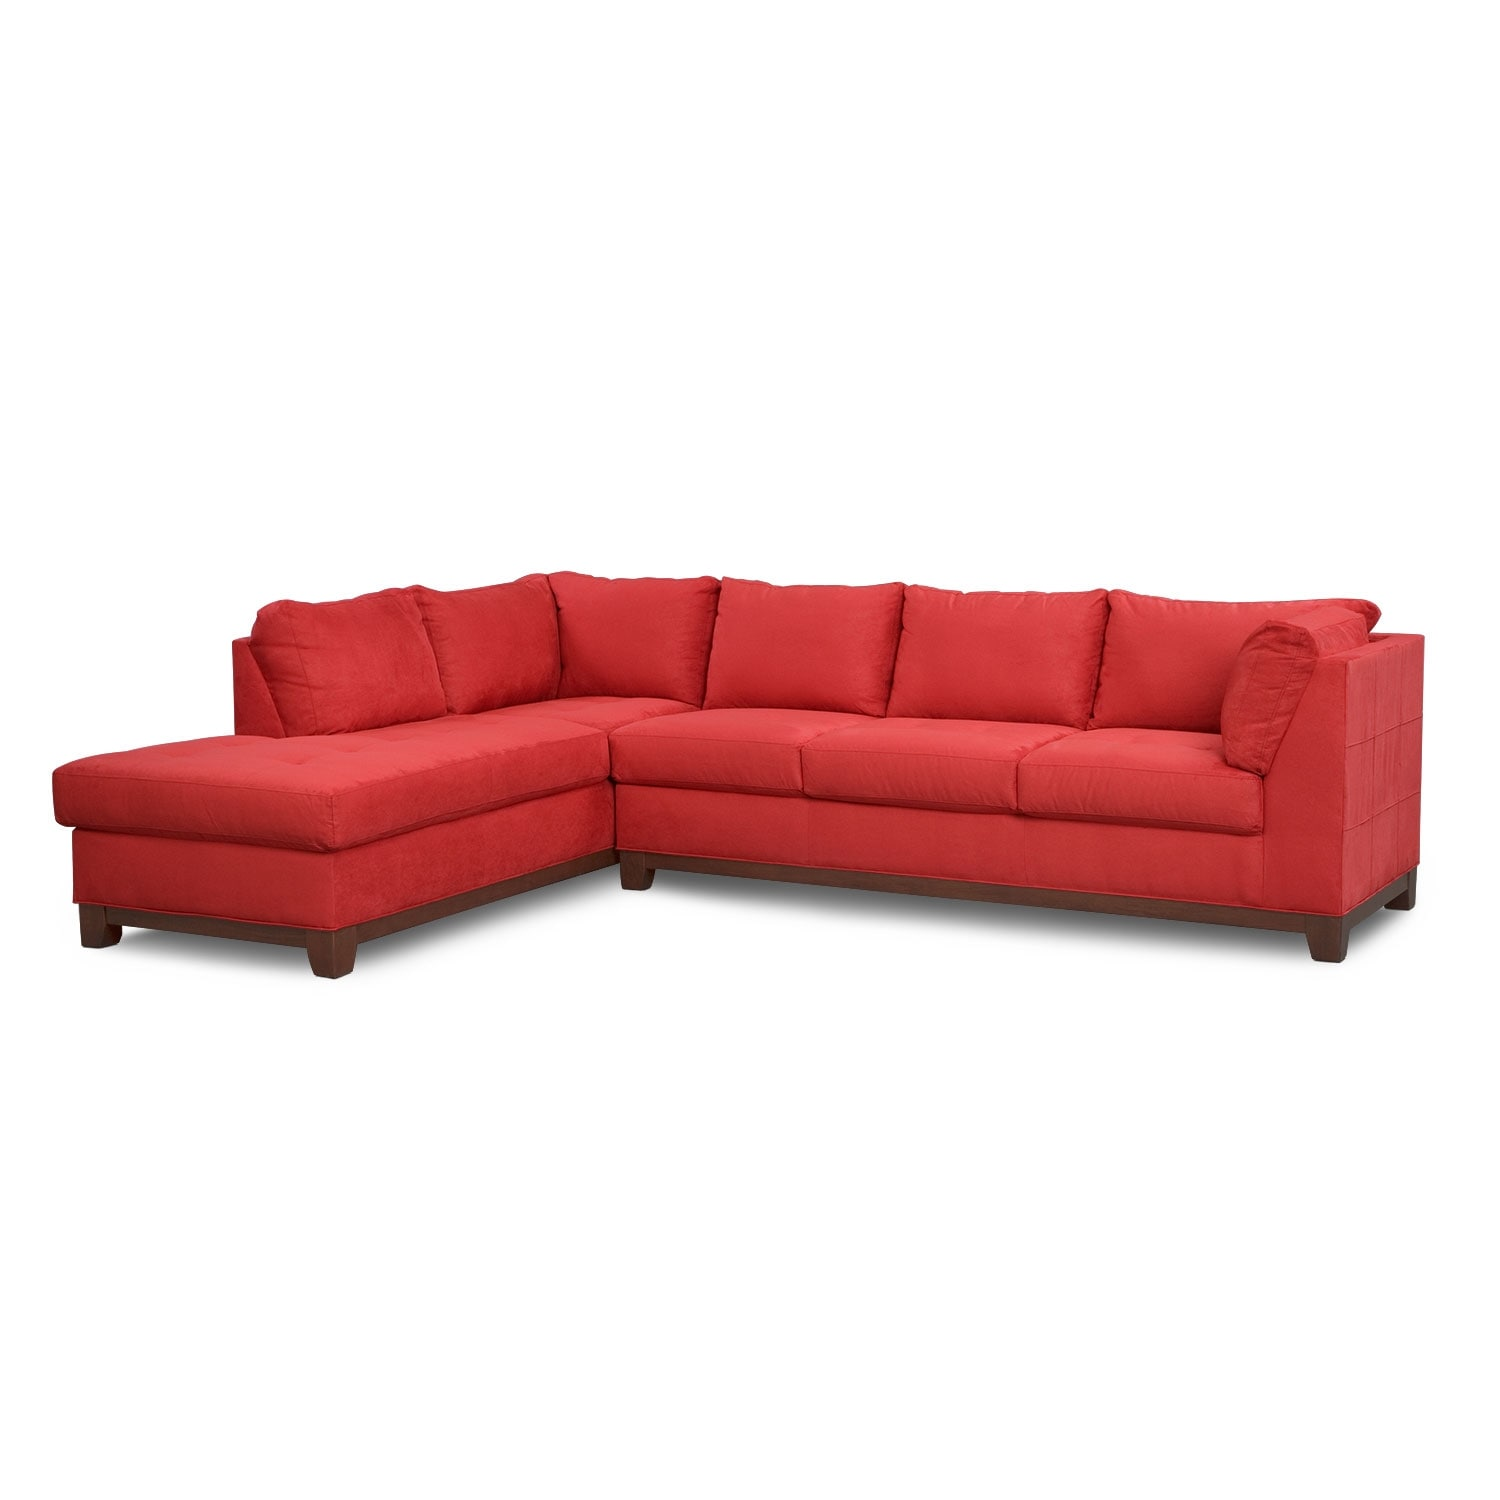 Soho 2-Piece Sectional with Left-Facing Chaise - Red